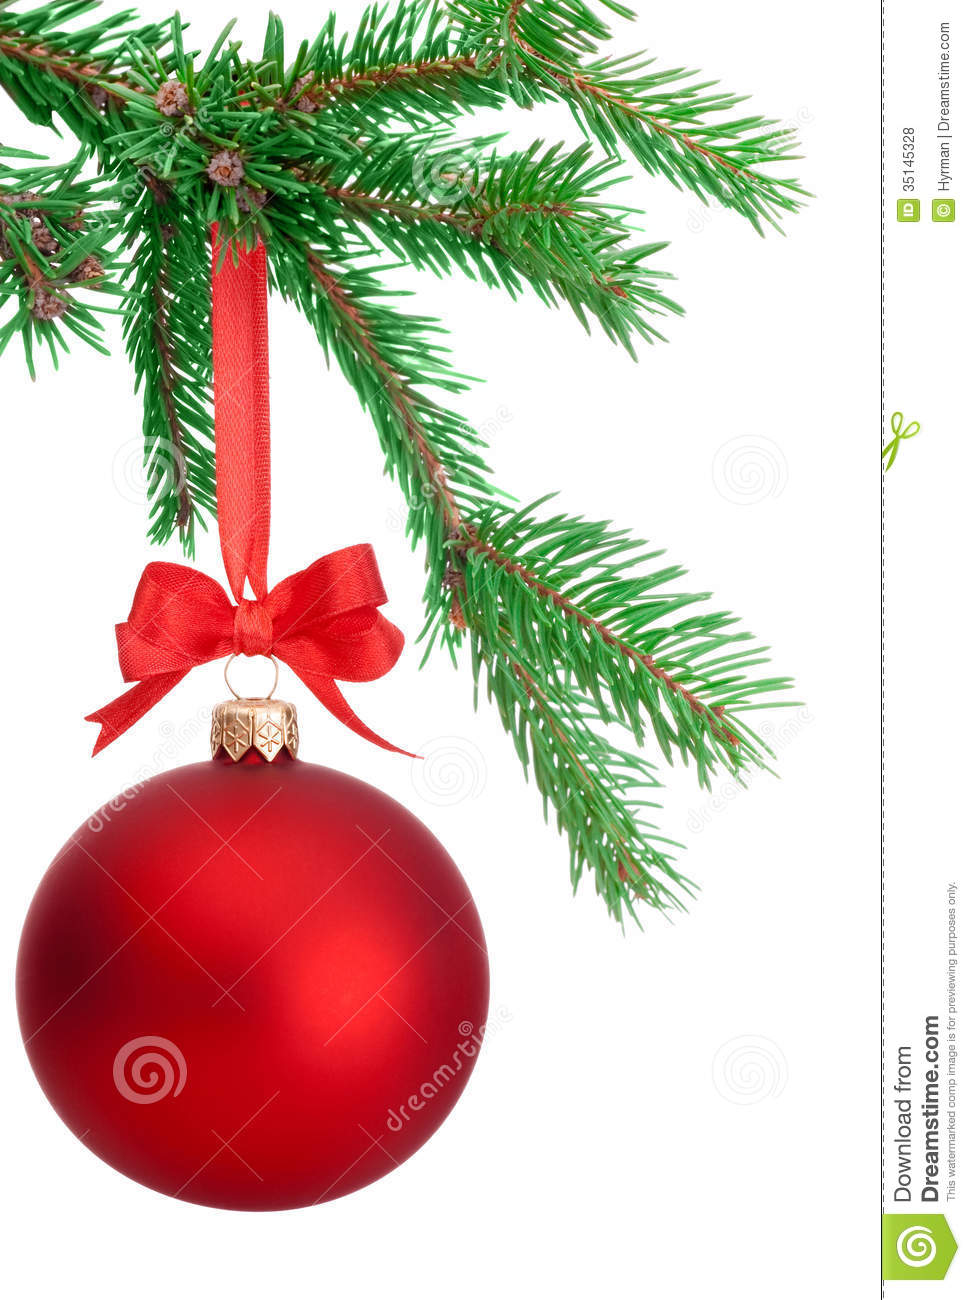 Christmas Ball Hanging On A Fir Tree Branch Isolated On